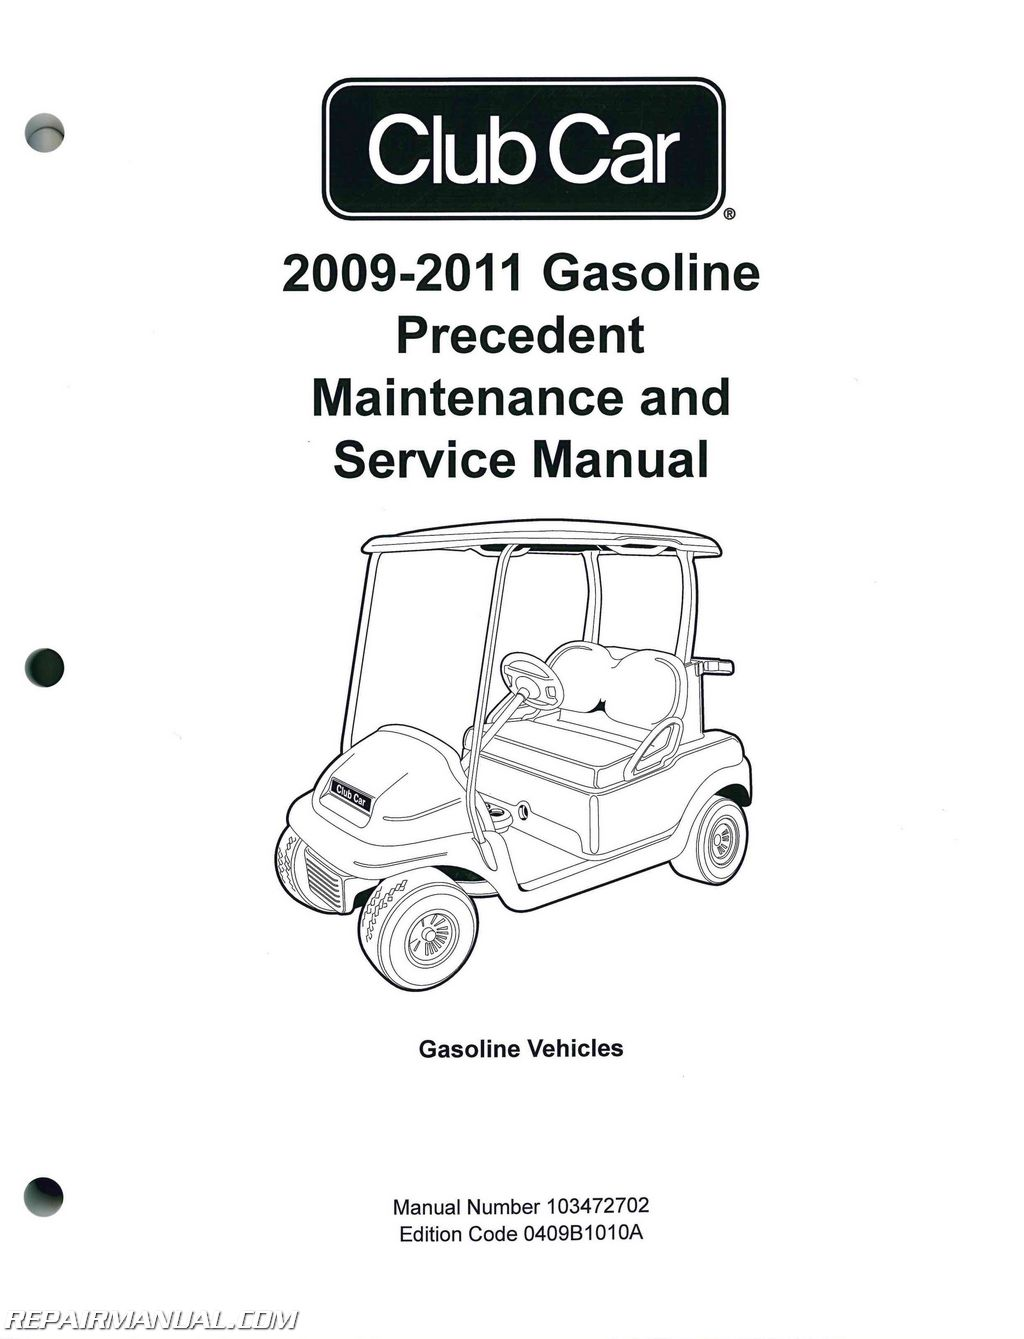 hight resolution of club car manual wire diagrams wiring diagram meta 2009 2011 club car gasoline precedent maintenance and